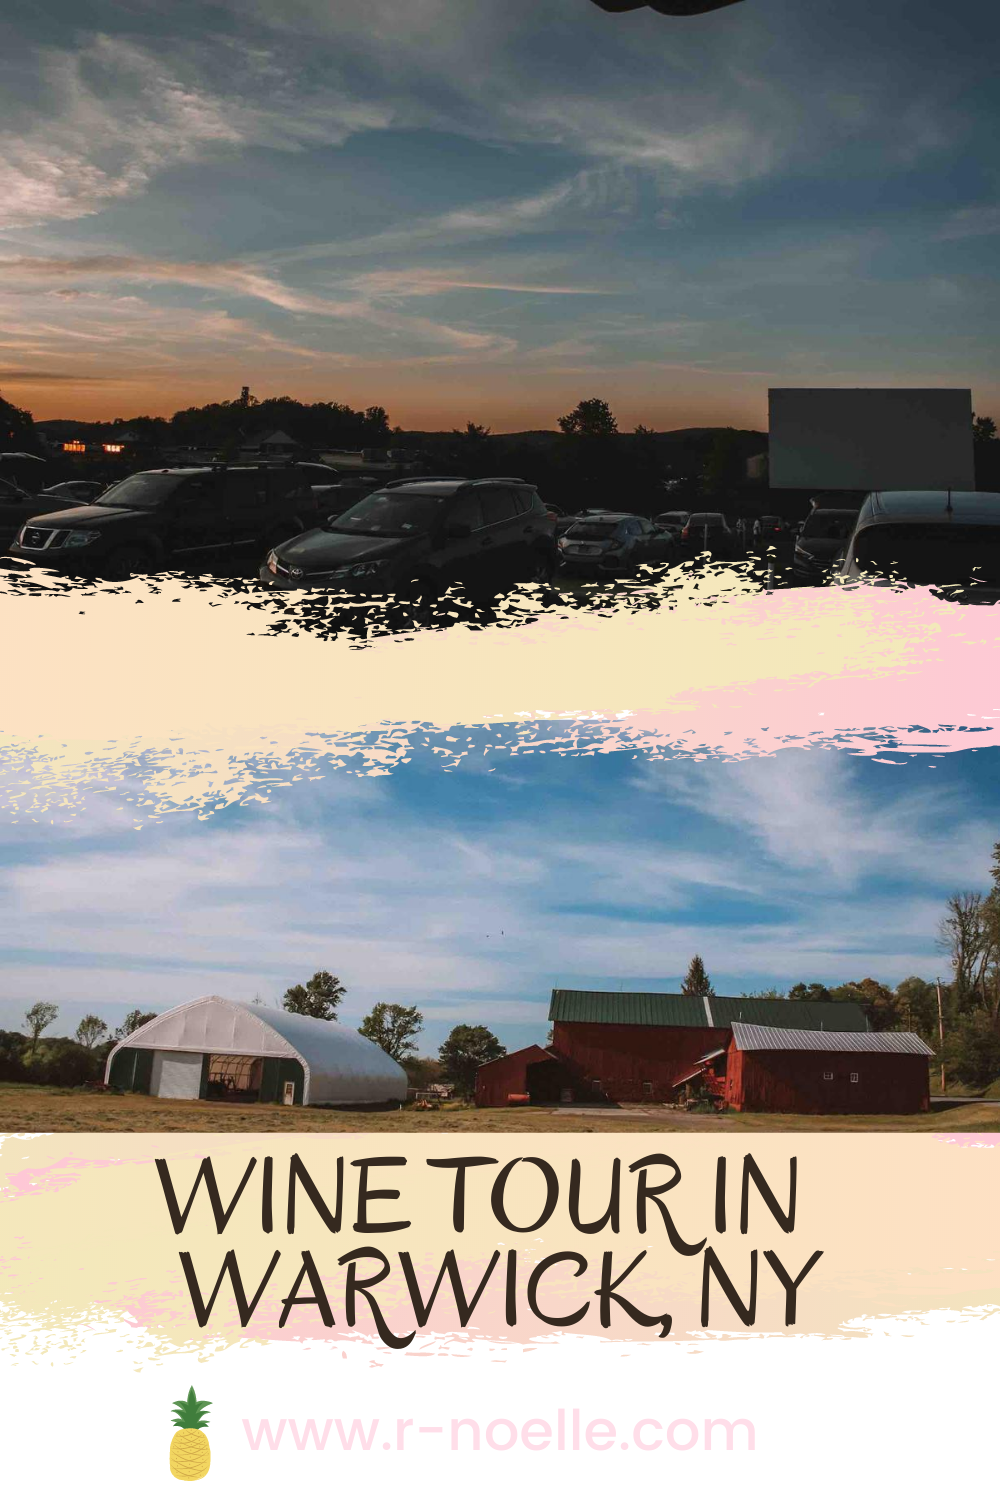 Explore Warwick, New York by going on the amazing Wine Tour. This is part of the Shawnagunk Wine Trail. If you're looking for things to do in Warwick, NY this will have your weekend plans covered. You won't regret the beautiful wineries or finishing at the local drive-in!